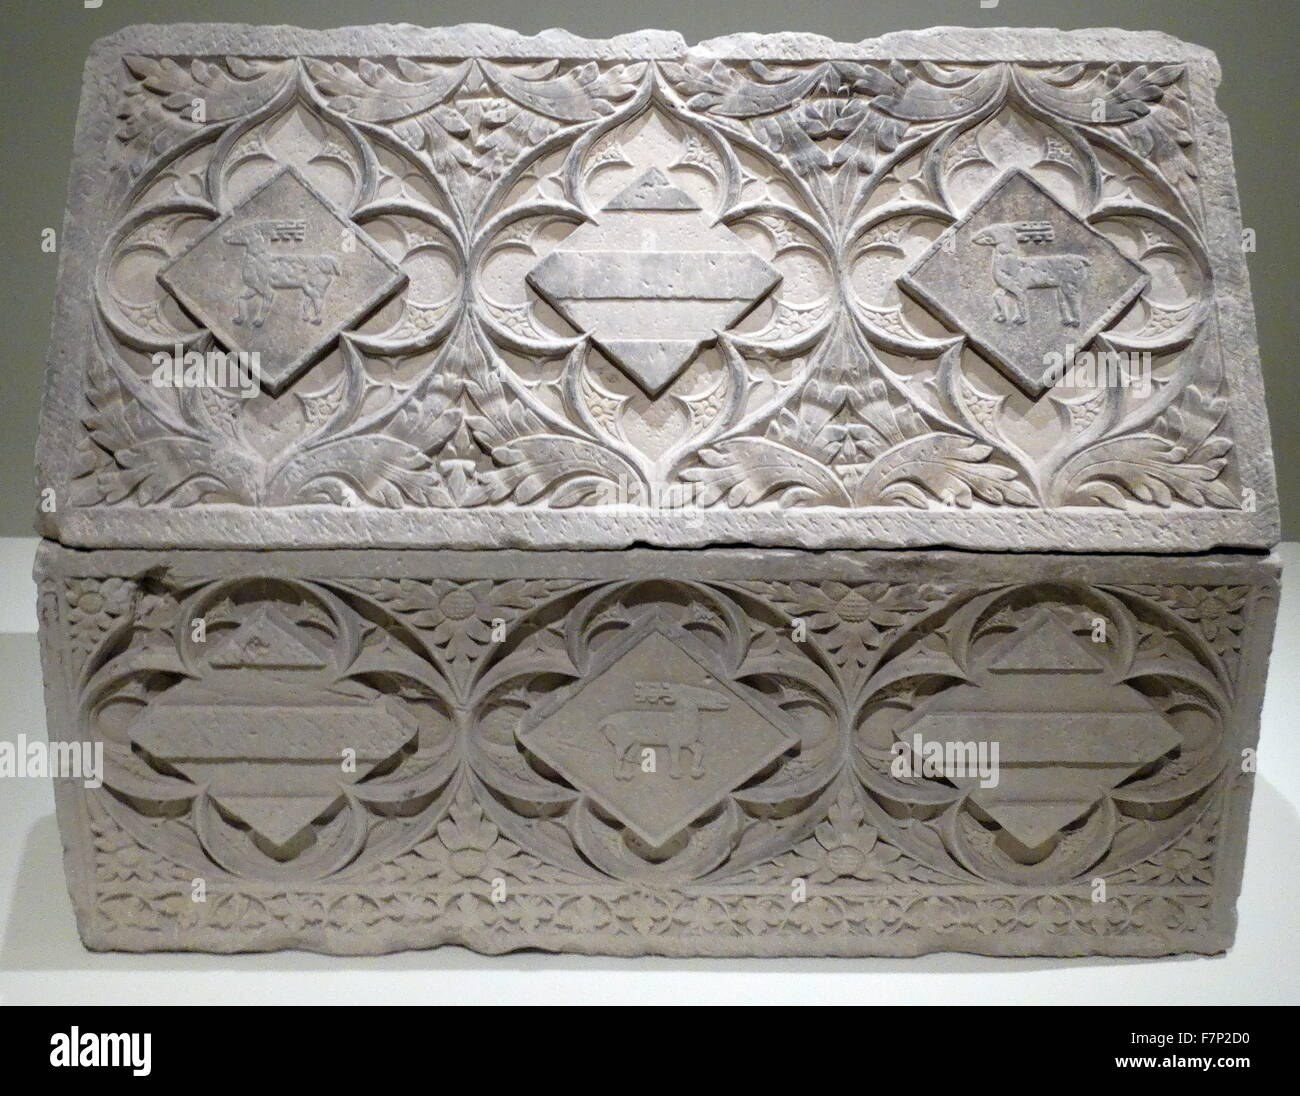 Sarcophagus-Lieder Boixadors, from the Cistercian monastery of Santa Maria de Poblet. by Anon. Dated 14th Century - Stock Image